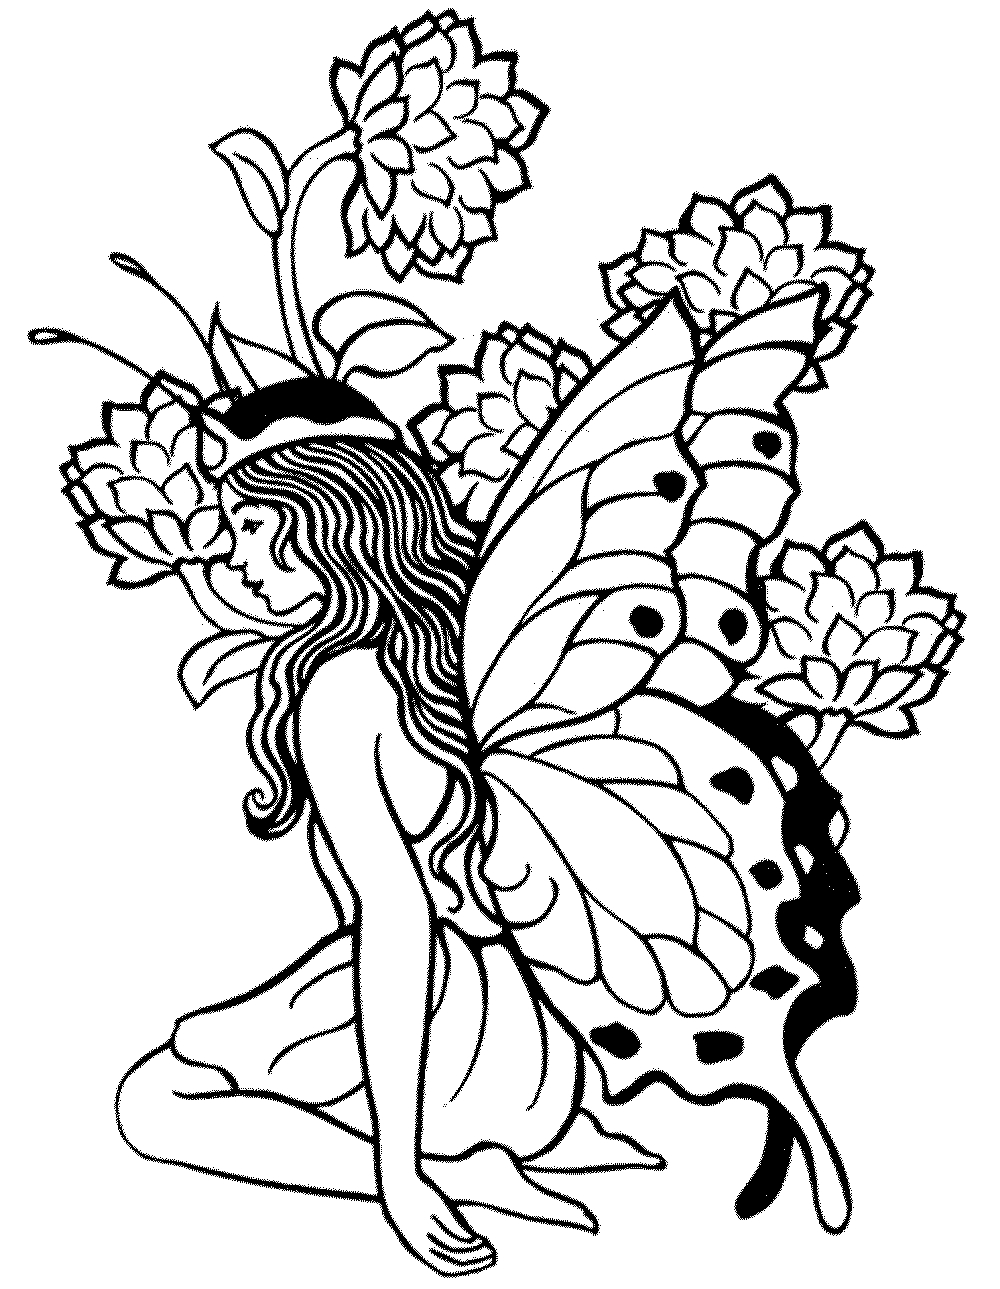 coloring pages for adults to print - free coloring media 7850